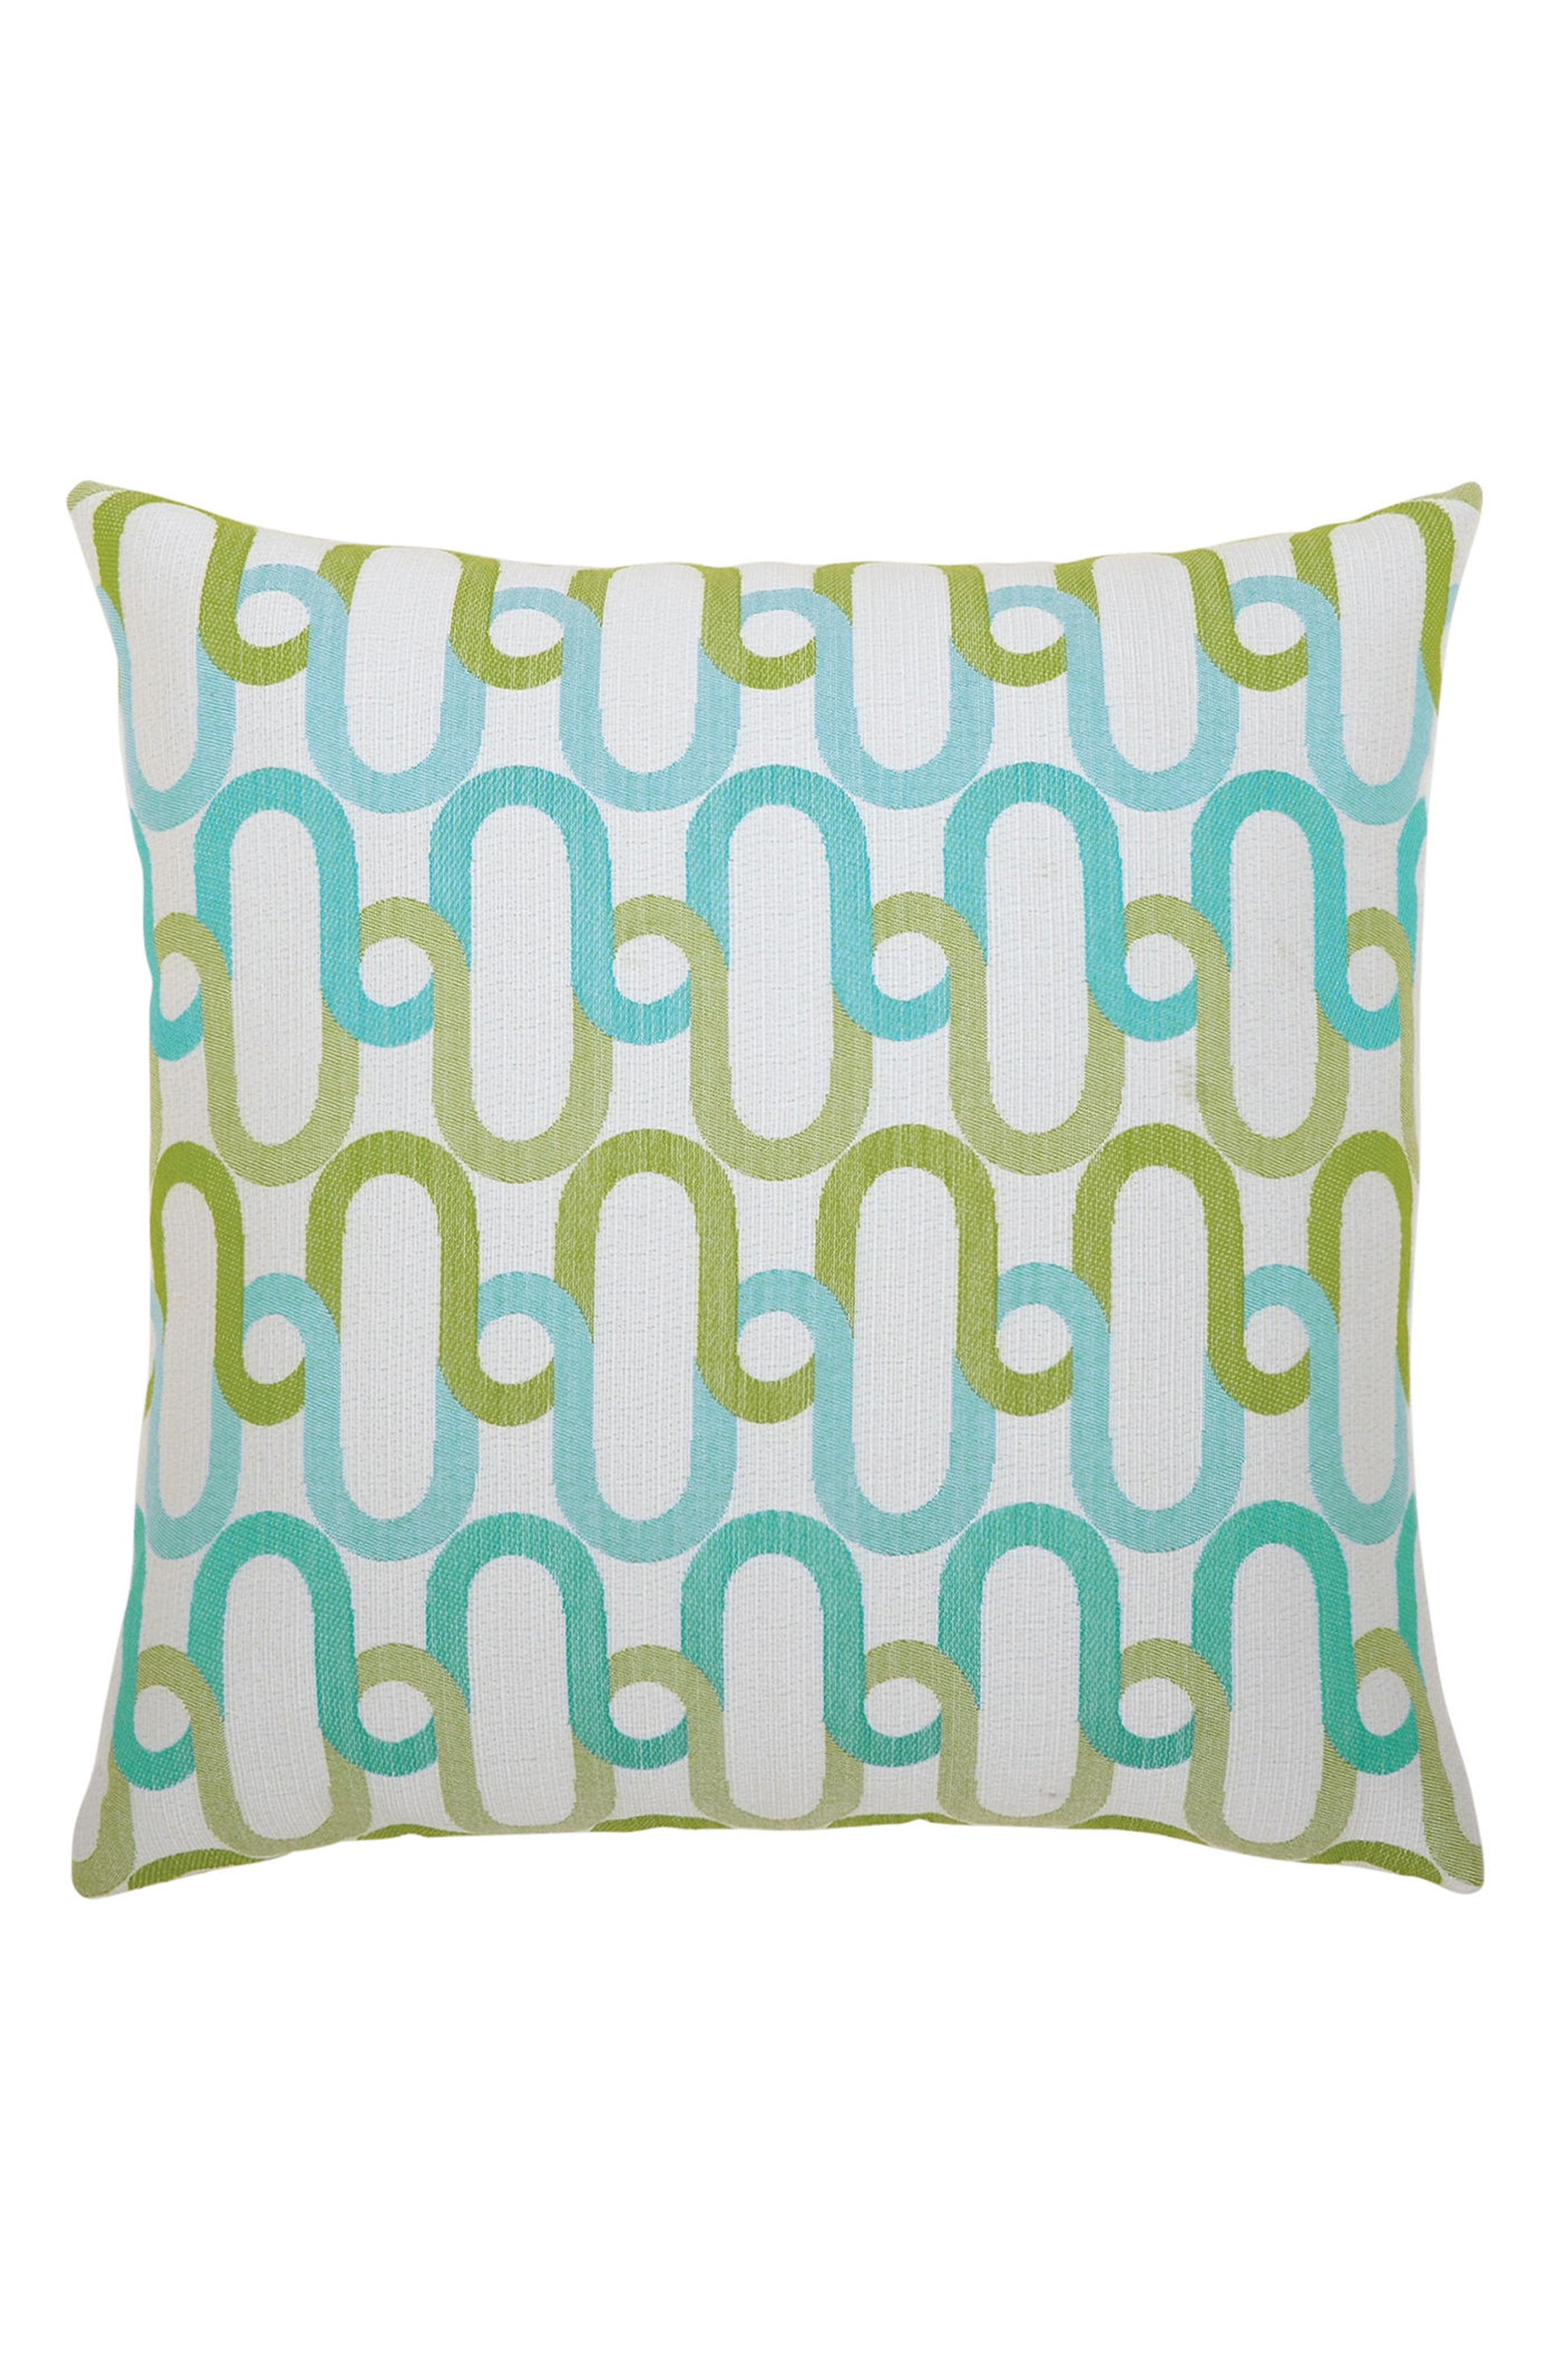 Poolside Link Indoor/Outdoor Accent Pillow,                         Main,                         color, BLUE/ GREEN